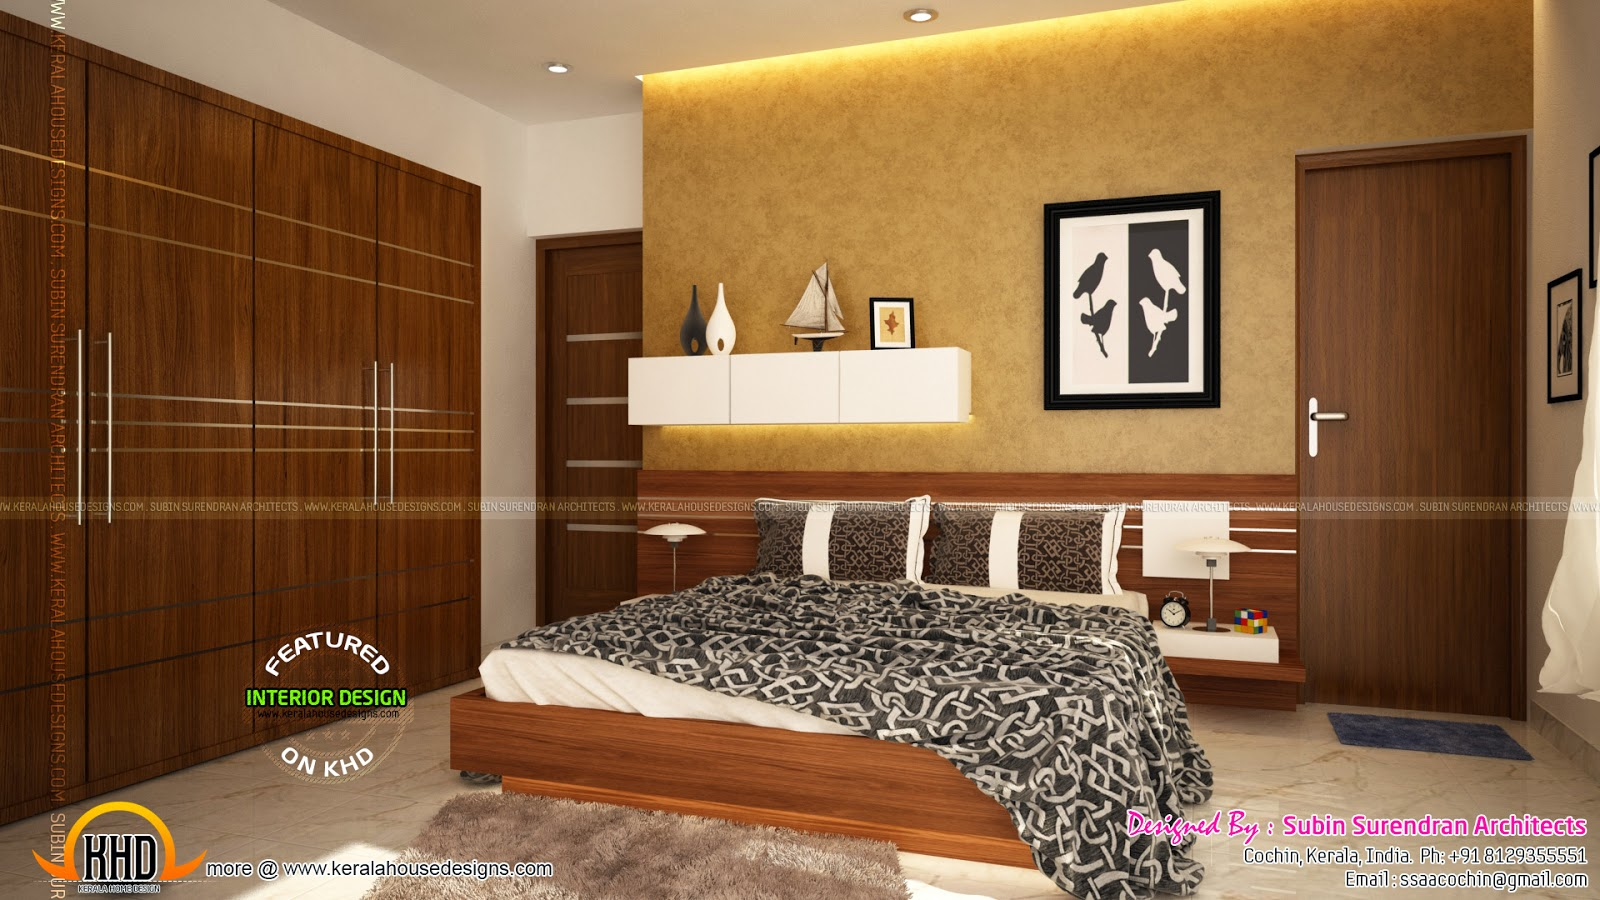 News And Article Online: Interior design Cochin